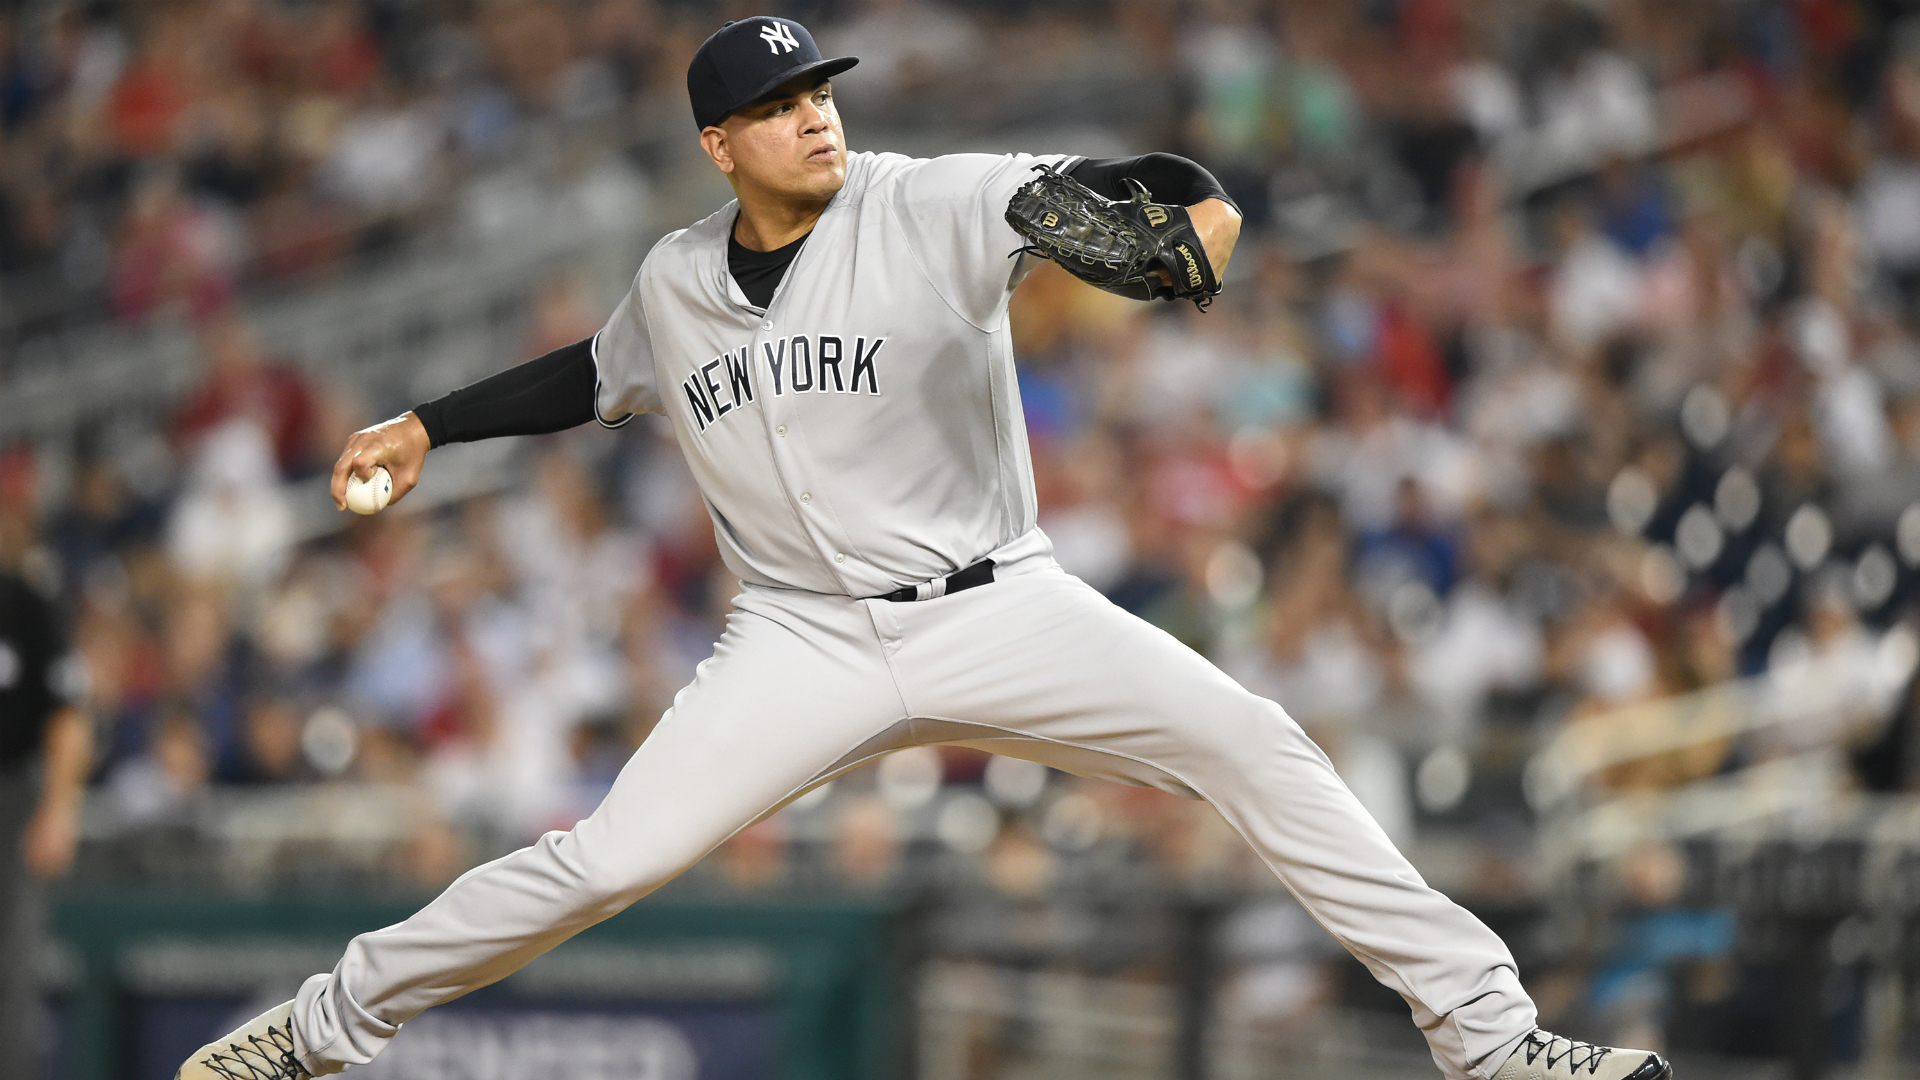 Yankees pitcher Dellin Betances (shoulder) will start season on IL, report says